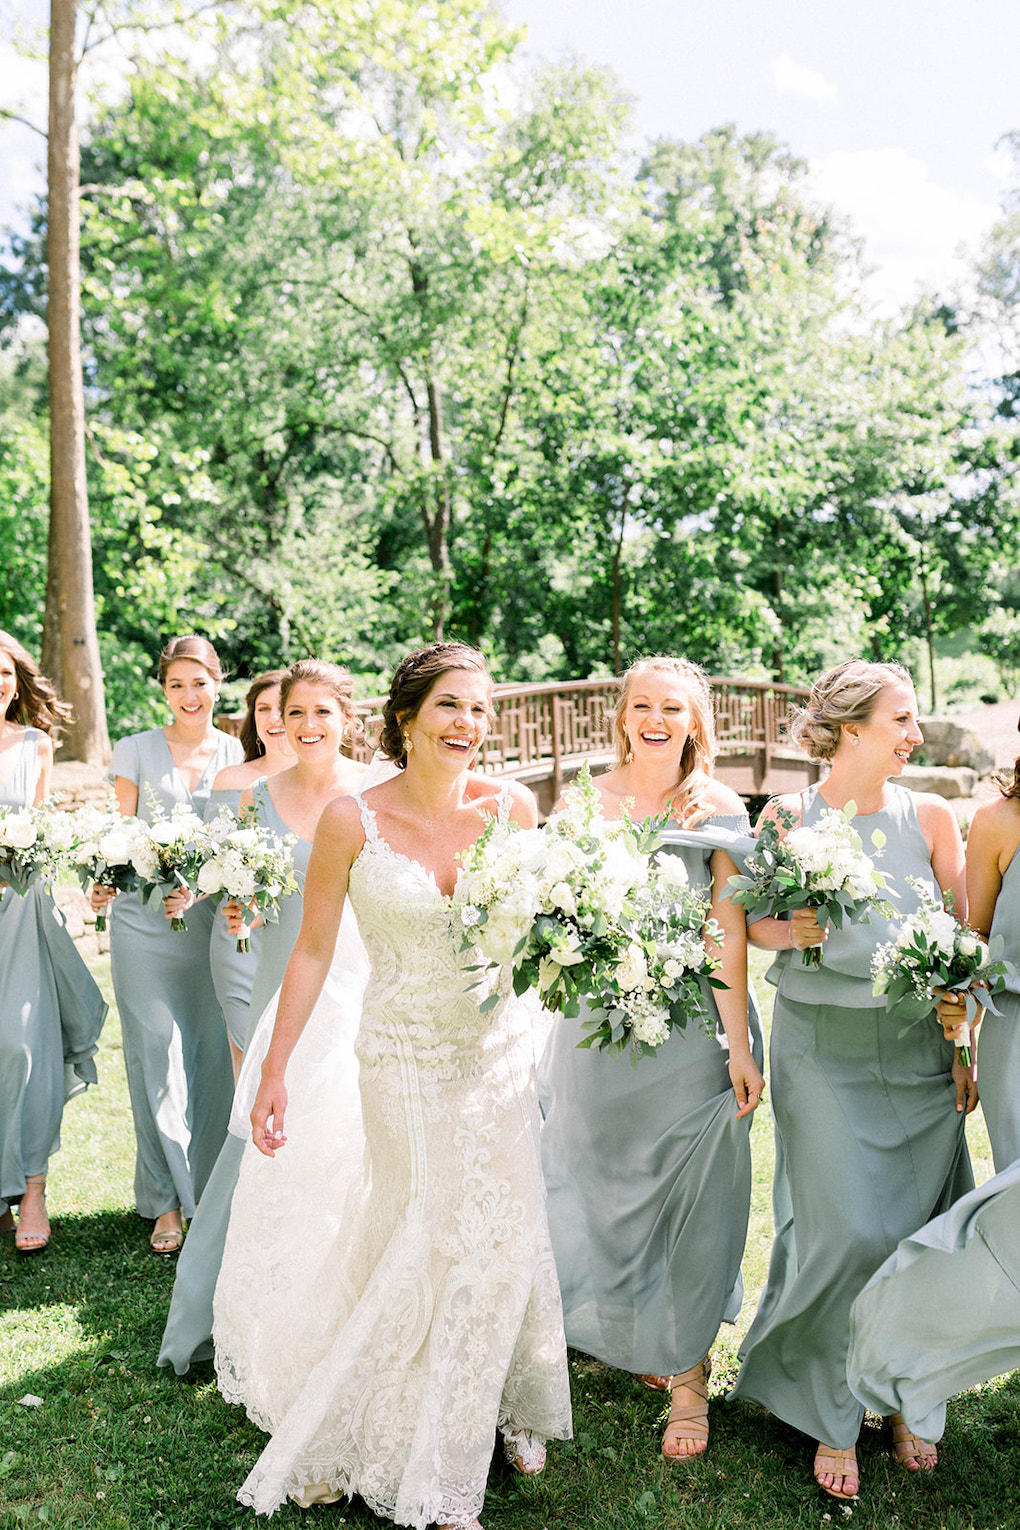 Mist Green Bridesmaids with Bouquets: Pittsburgh Botanic Garden wedding planned by Exhale Events. See more wedding inspiration at exhale-events.com!